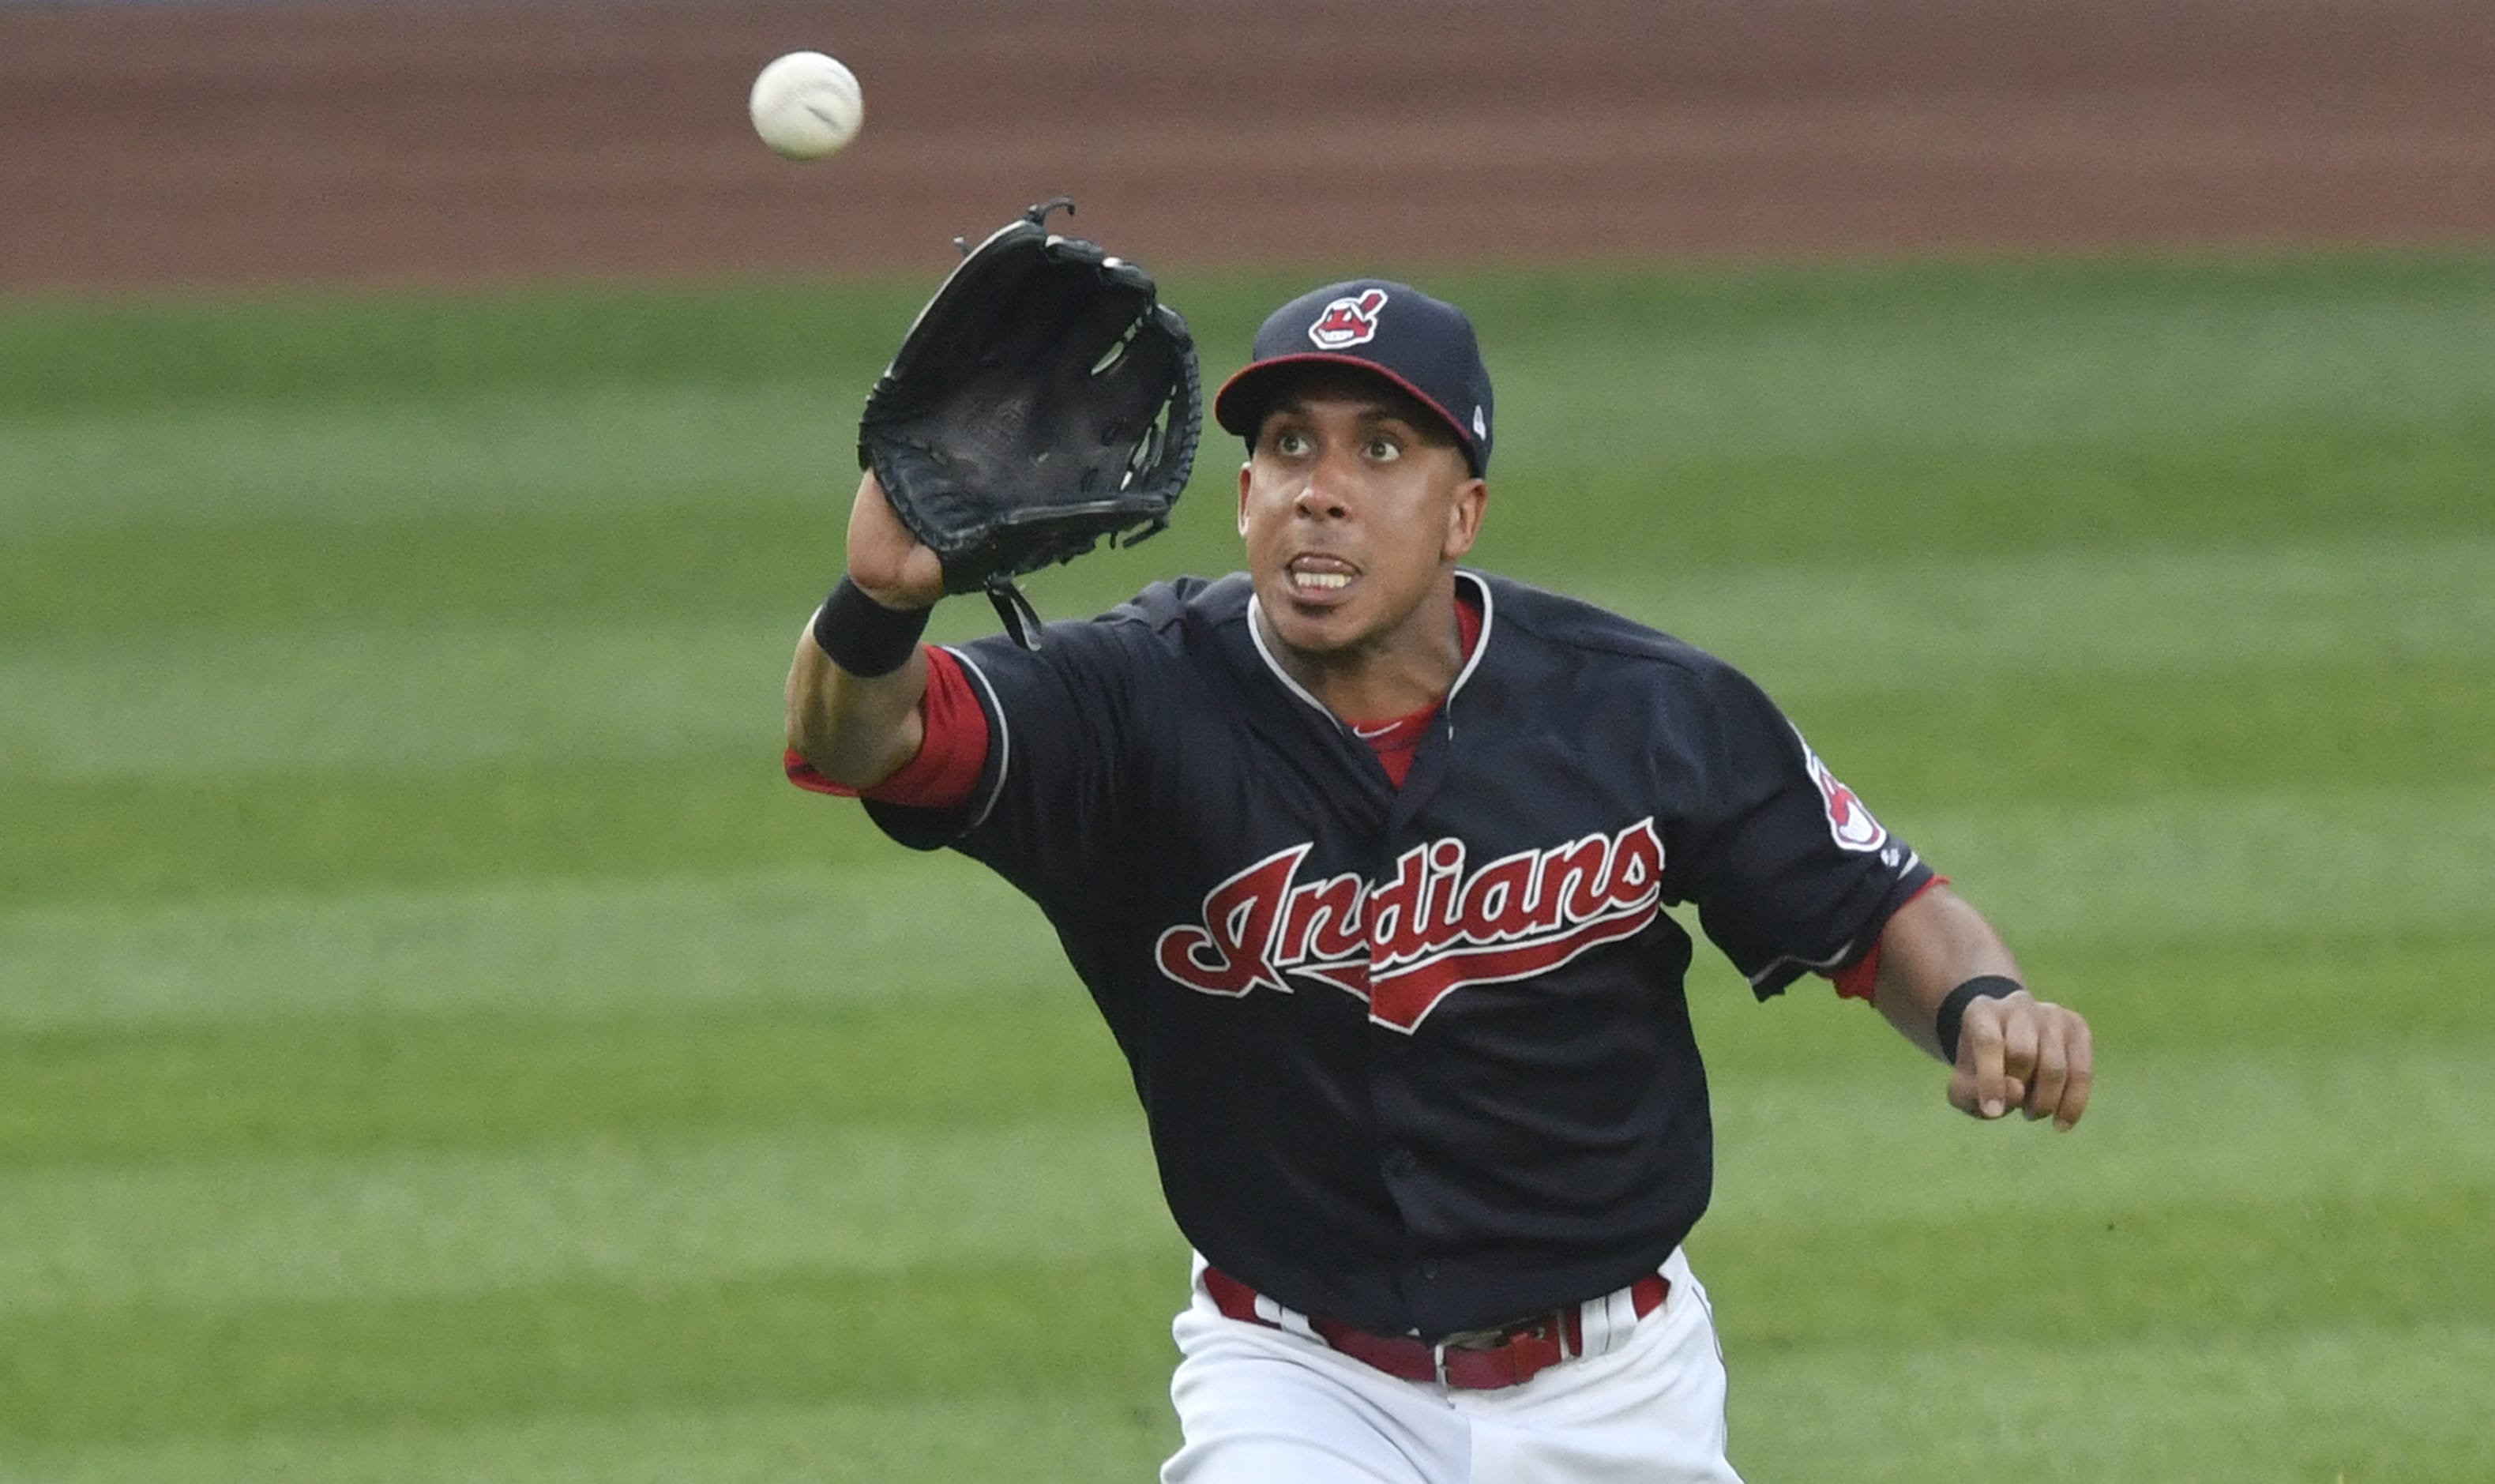 Indians' Brantley sprains right ankle against Rockies